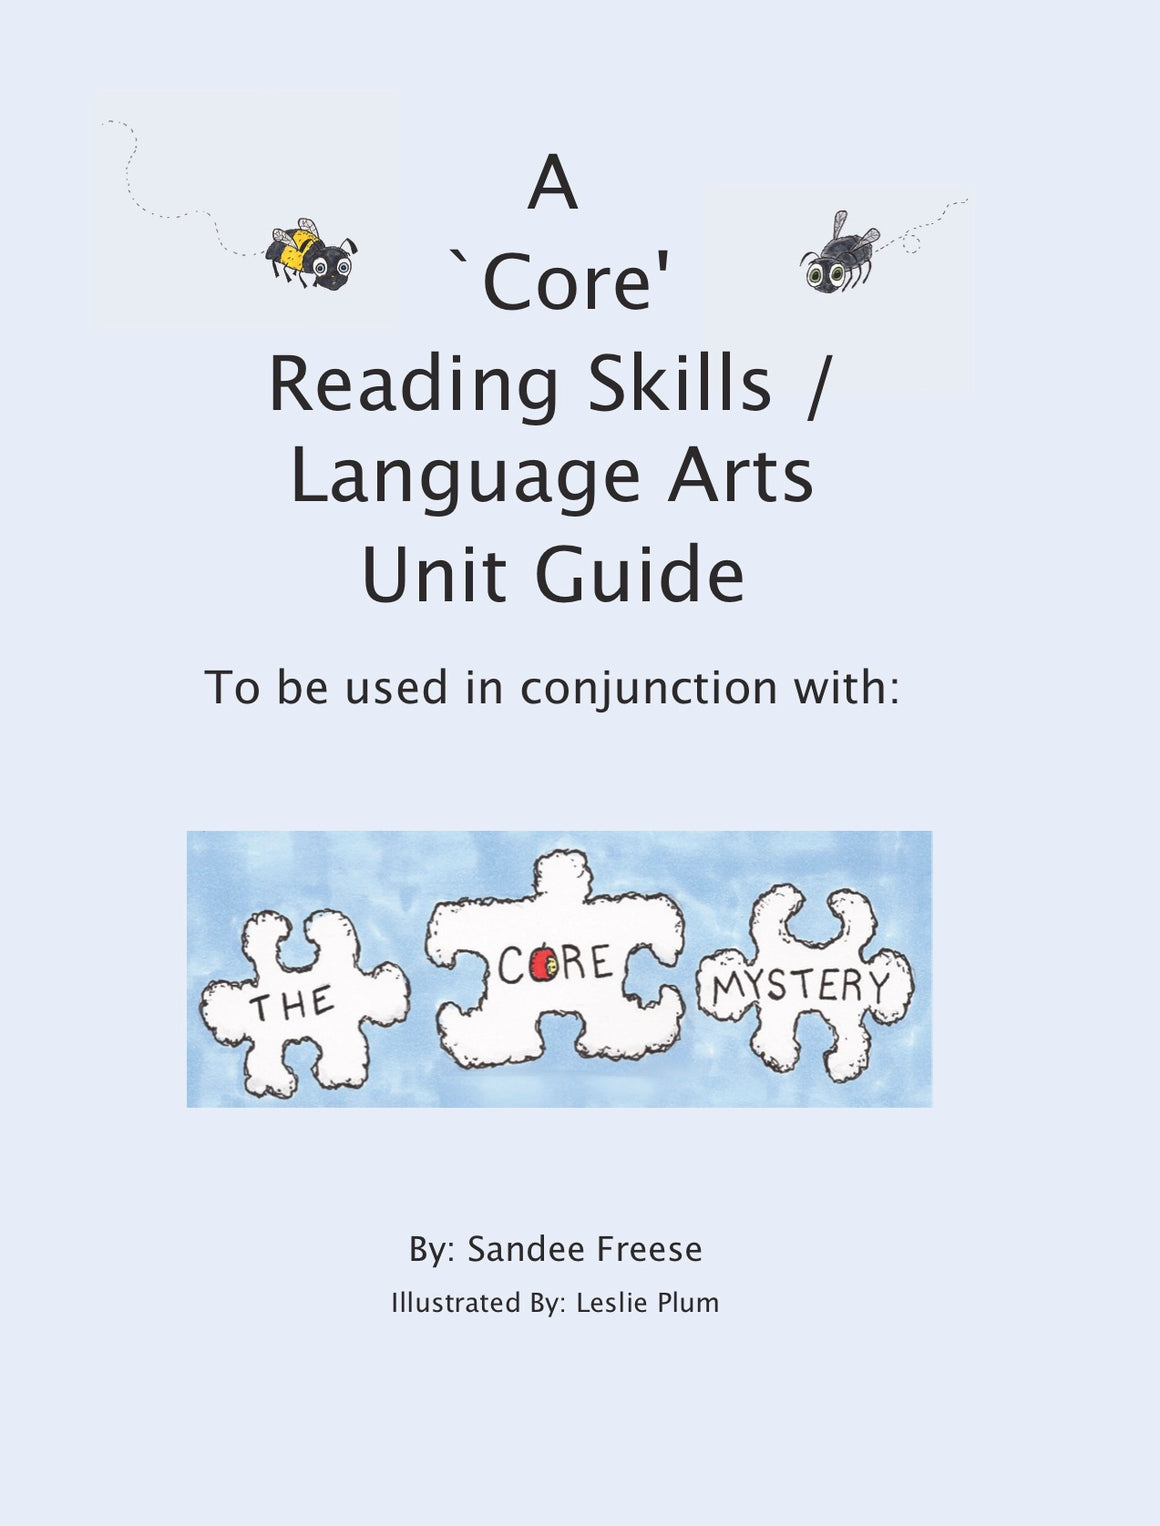 A 'Core' Reading Skills / Language Arts Unit Guide: To be used in conjunction with: The Core Mystery